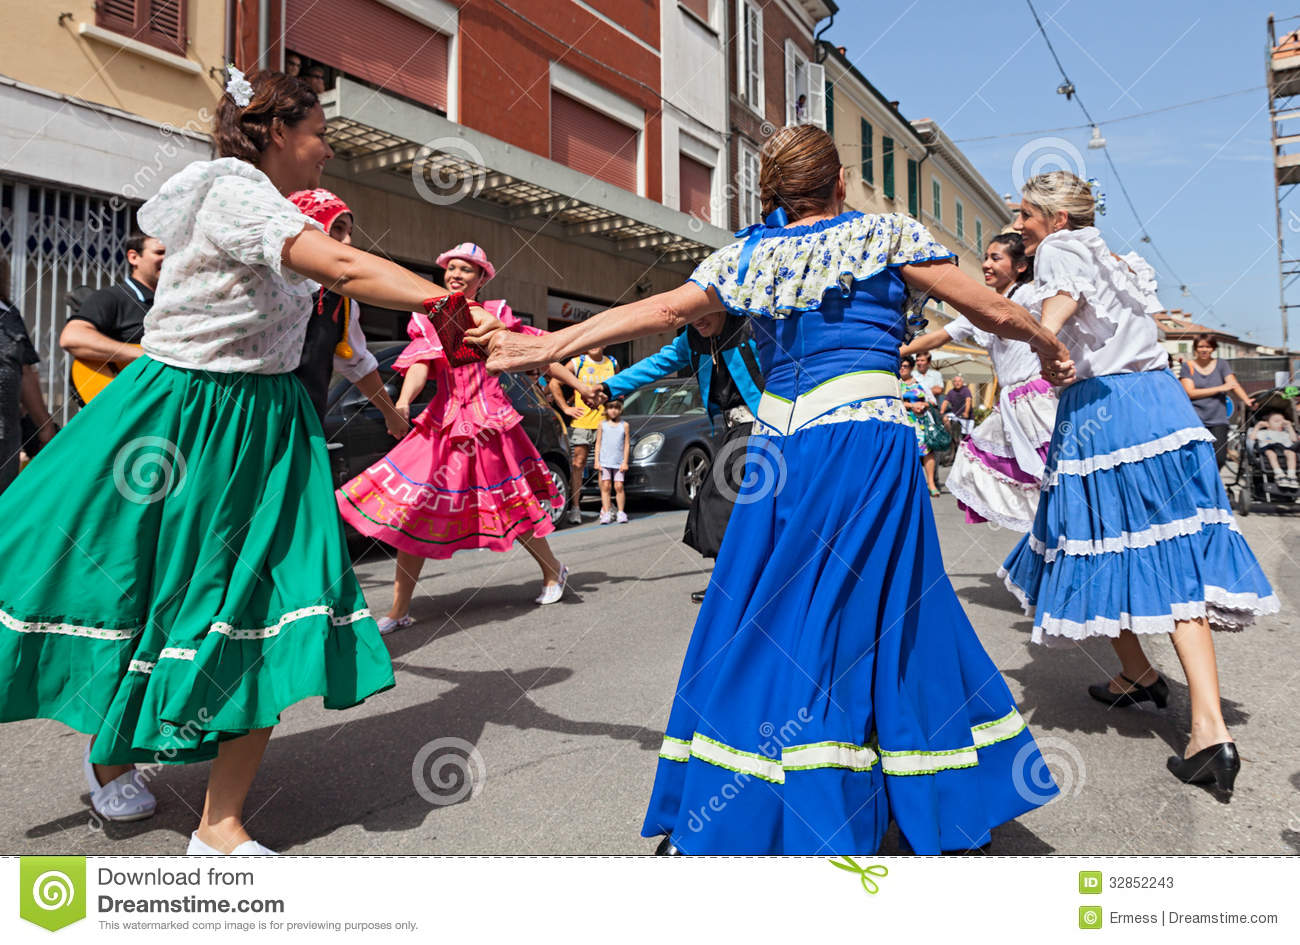 Atgentine circle dance editorial stock photo  Image of group